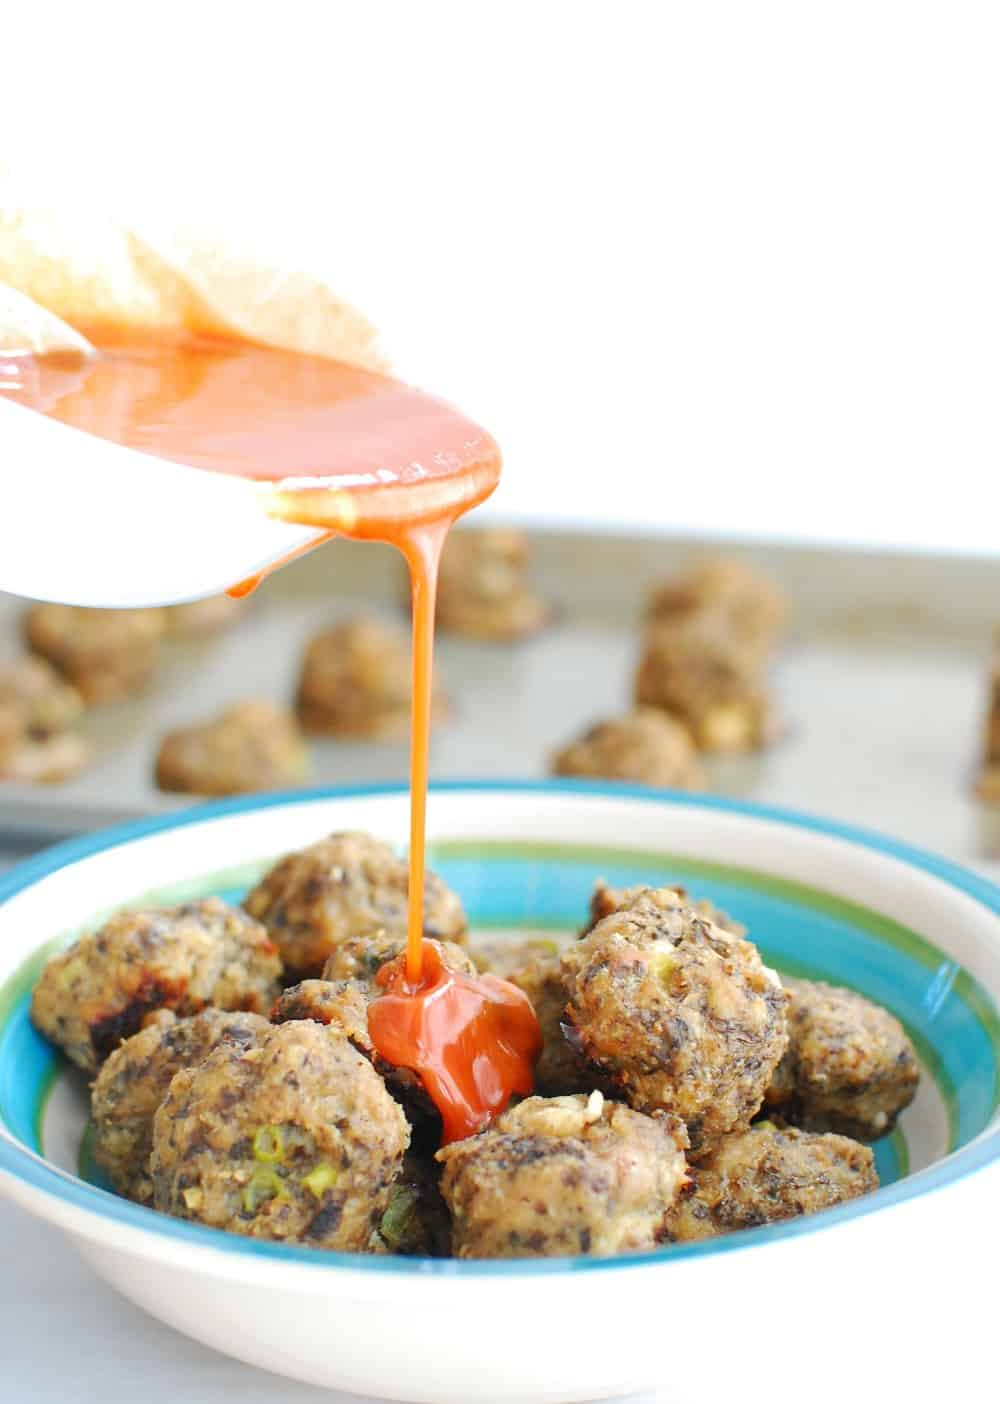 Pouring buffalo sauce over turkey meatballs